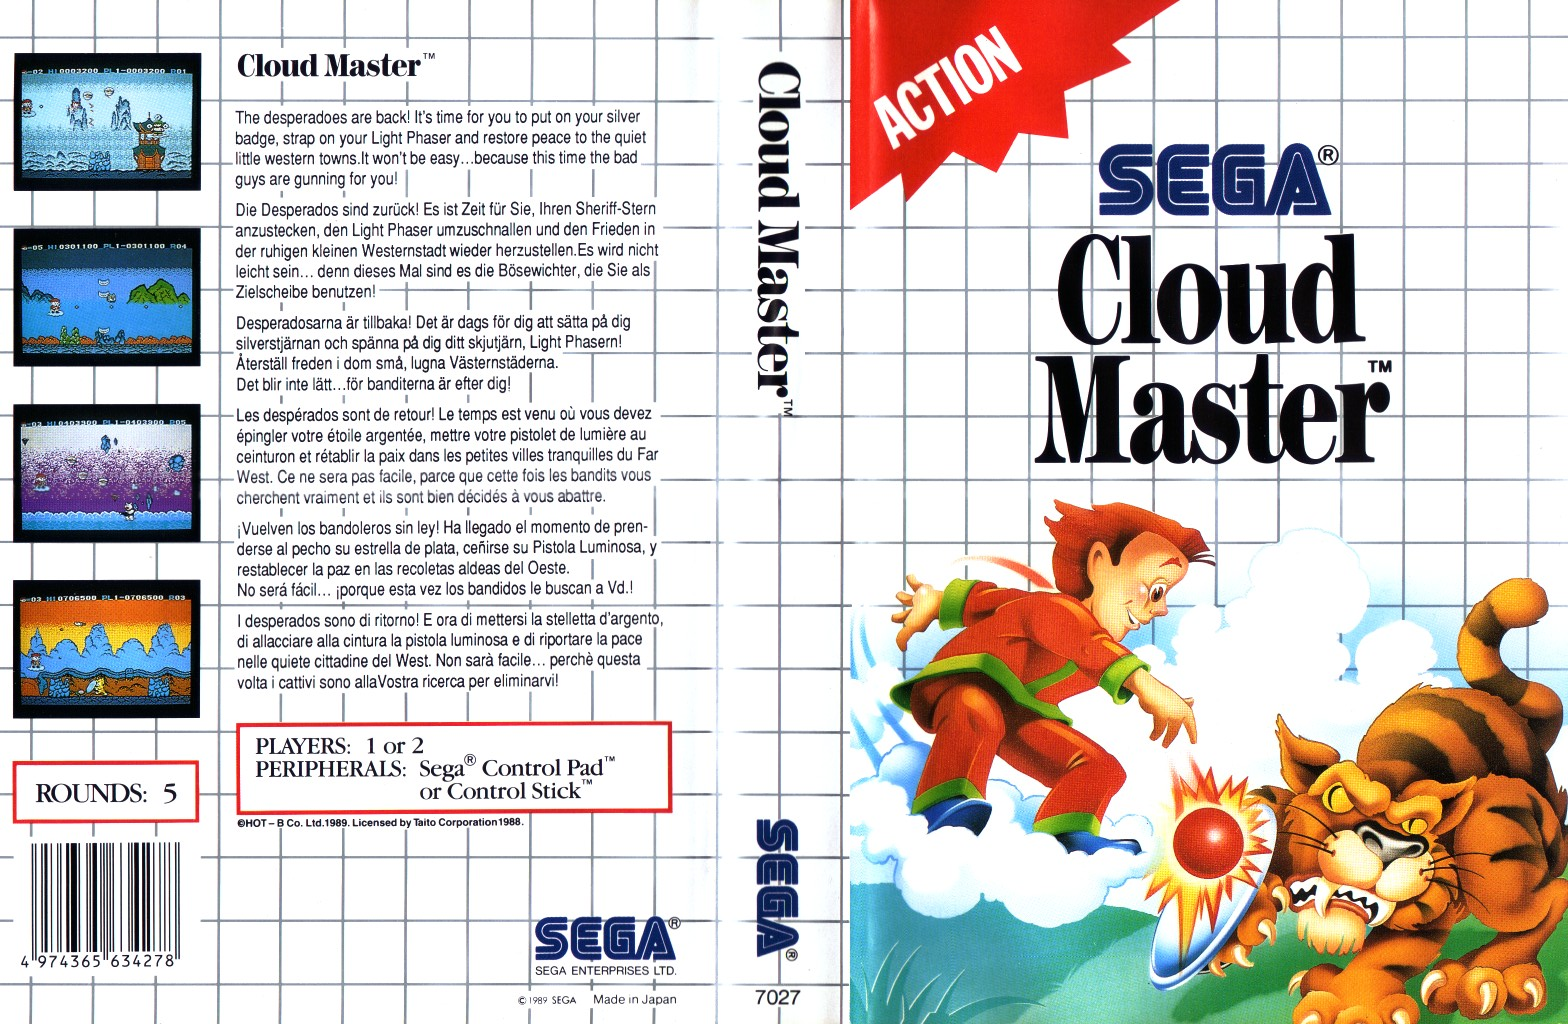 http://www.smspower.org/uploads/Scans/CloudMaster-SMS-EU-WantedText.jpg